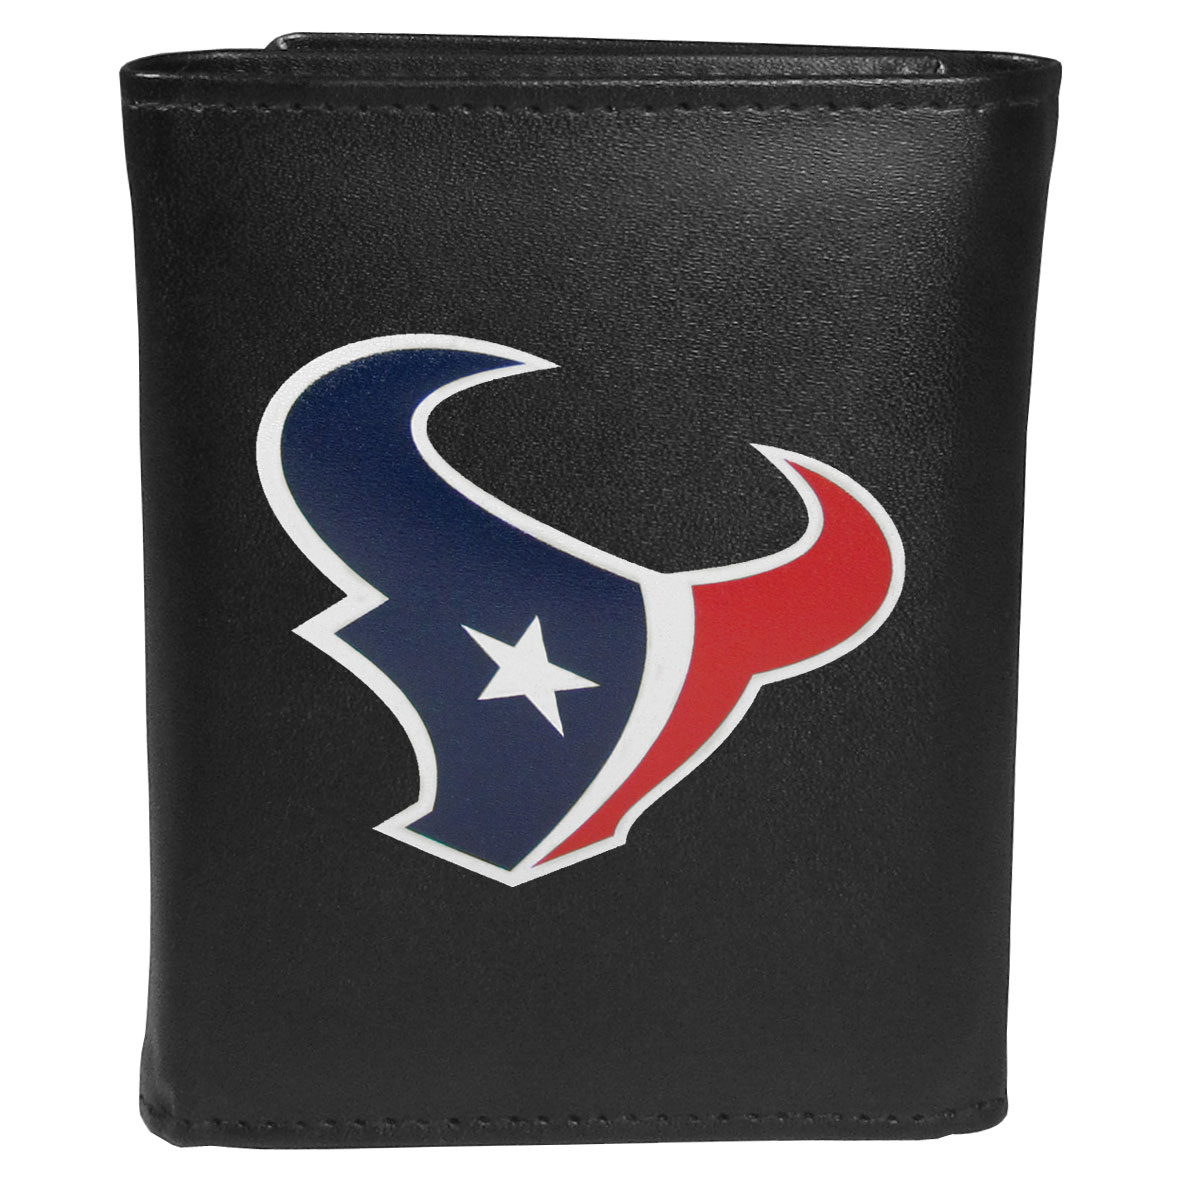 Houston Texans Tri-fold Wallet Large Logo - Sports fans do not have to sacrifice style with this classic tri-fold wallet that sports theHouston Texans?extra large logo. This men's fashion accessory has a leather grain look and expert craftmanship for a quality wallet at a great price. The wallet features inner credit card slots, windowed ID slot and a large billfold pocket. The front of the wallet features an extra large printed team logo.